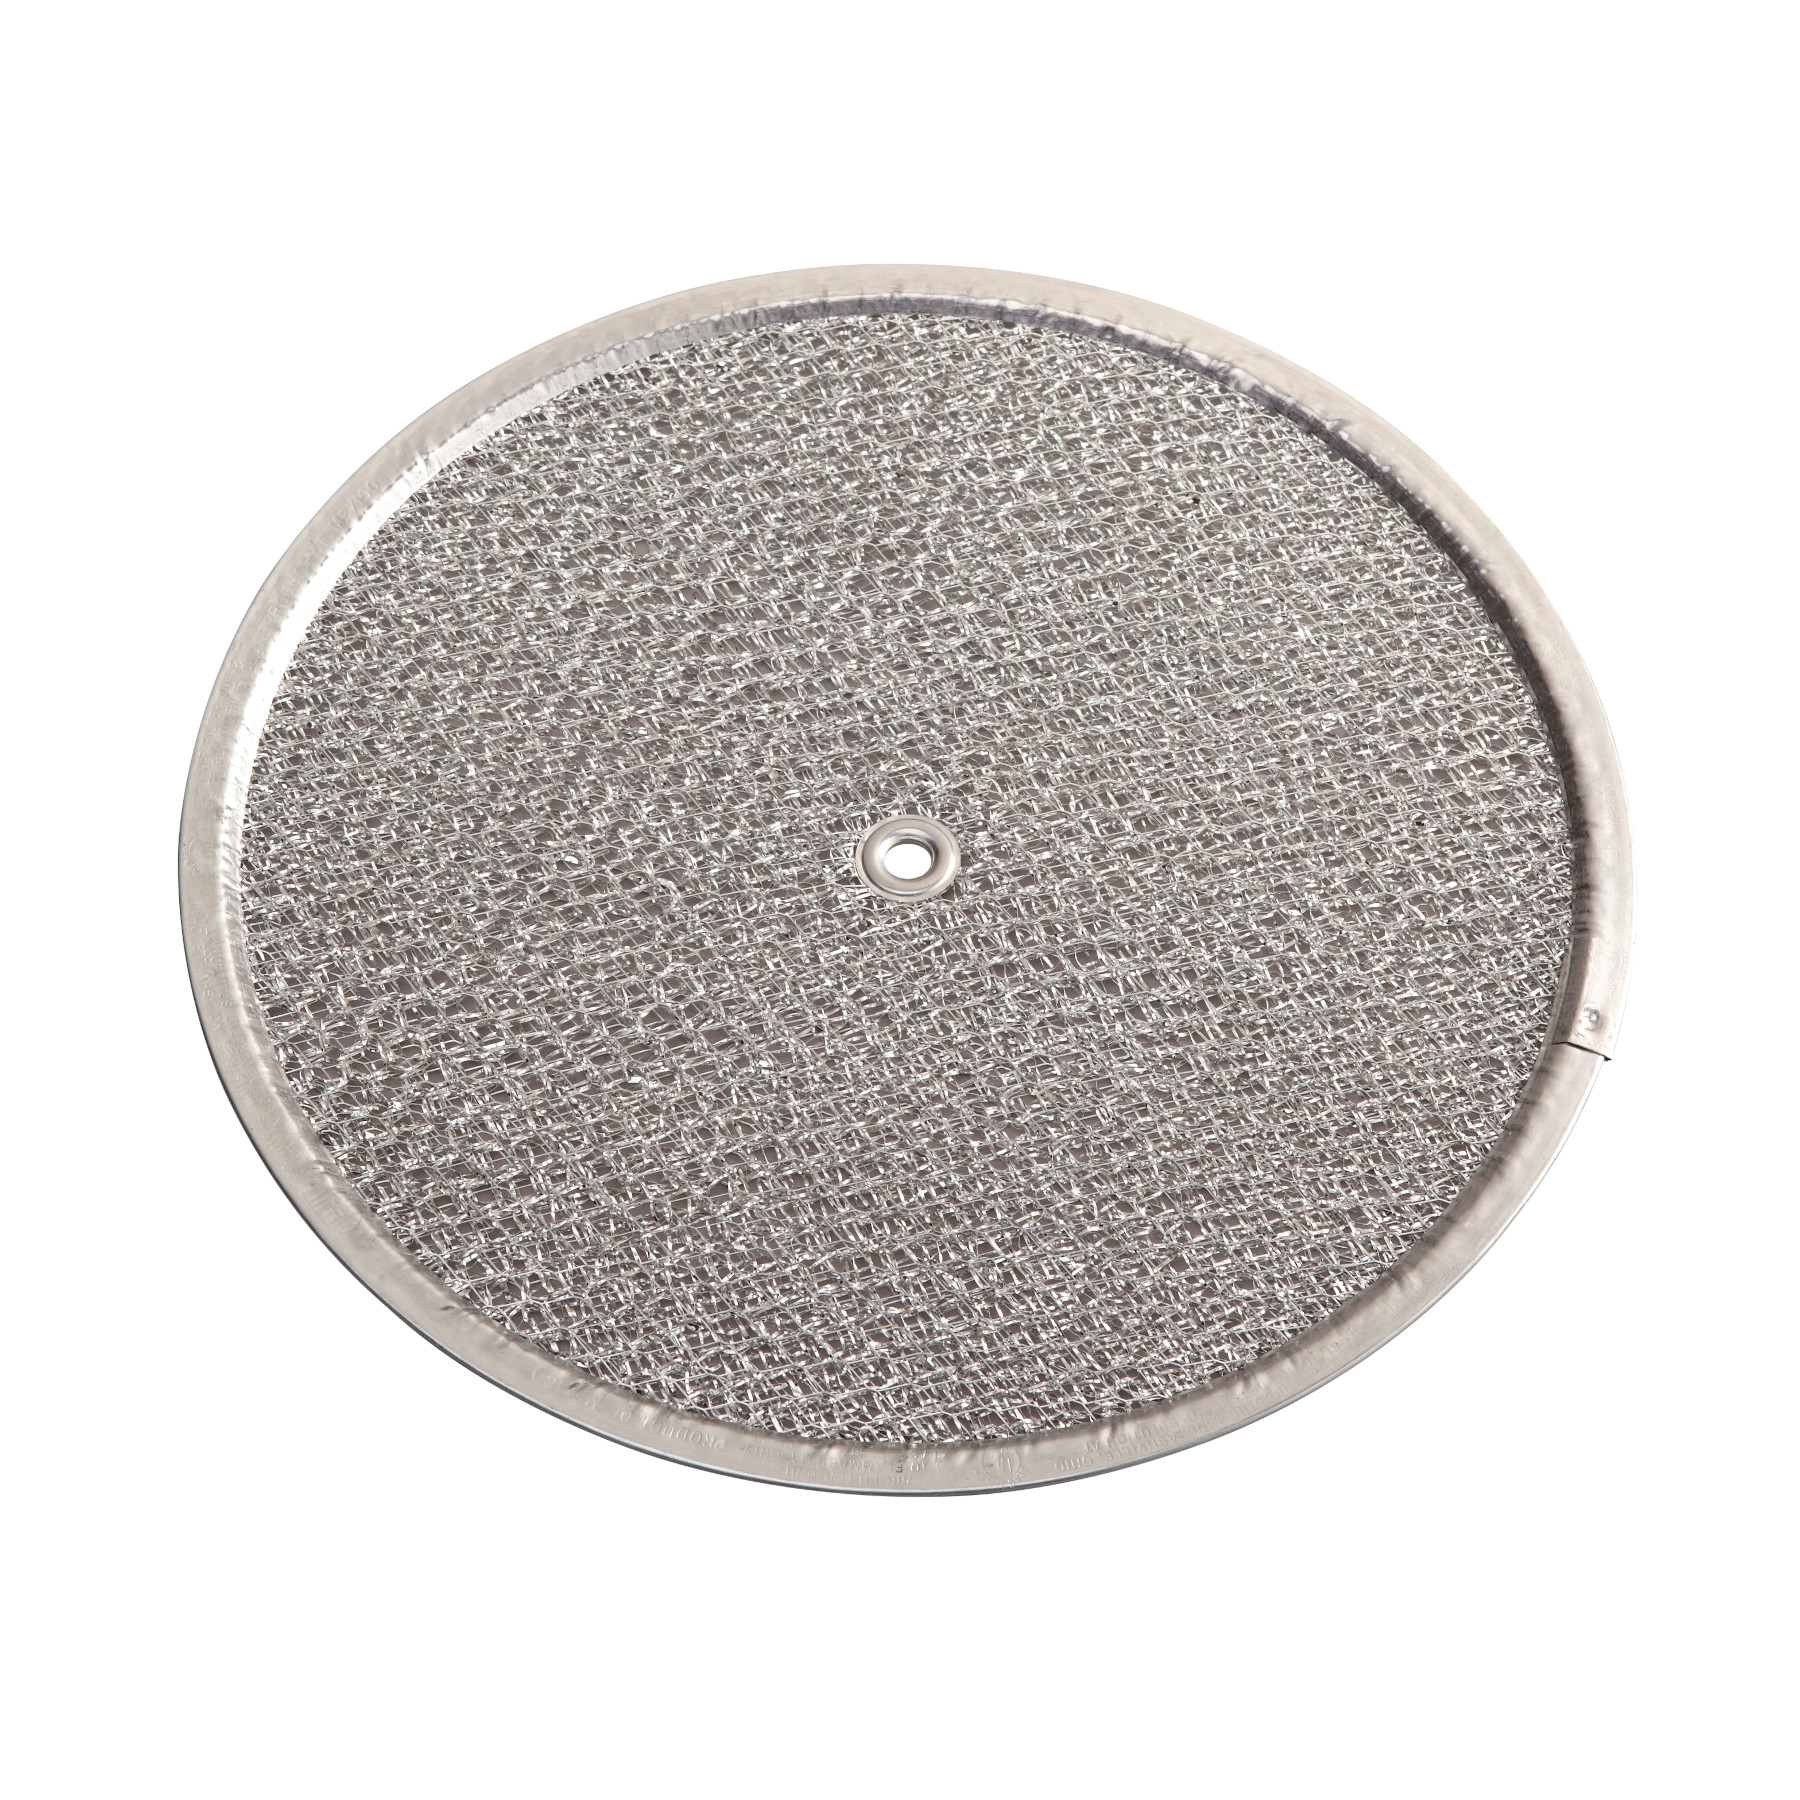 Broan-NuTone® Filter for 8-Inch Exhaust Fans